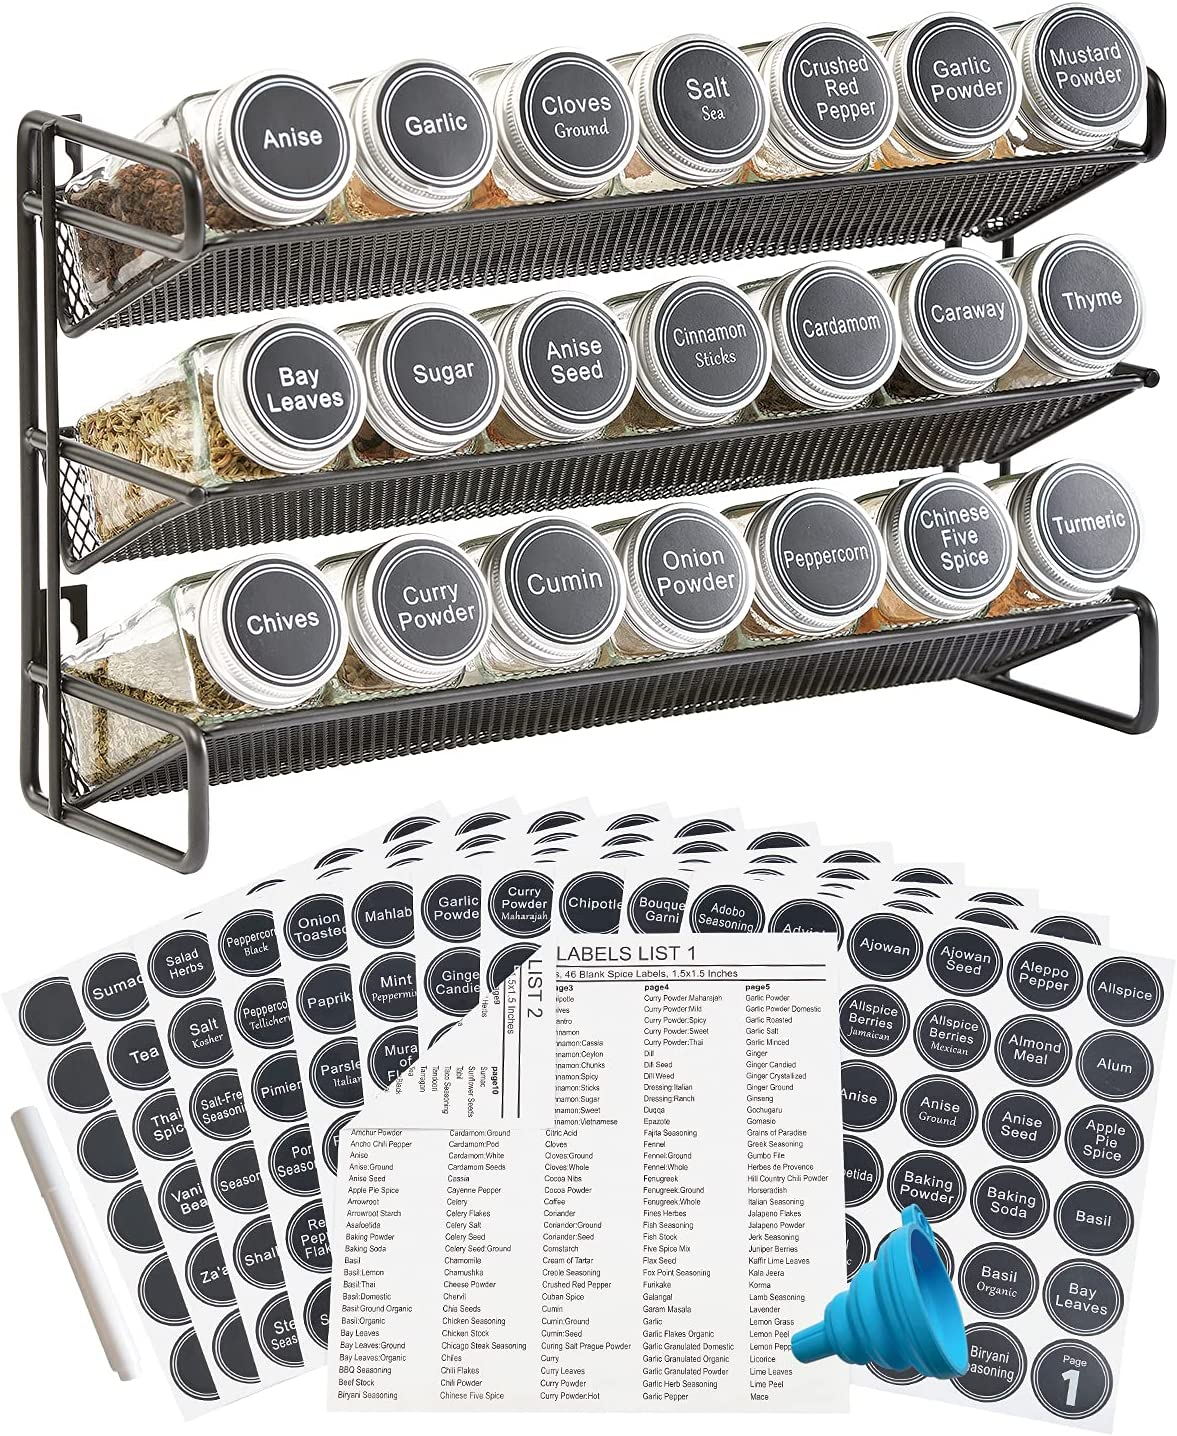 3 Tier Spice Rack Organizer Empty Jars with New product! New type 386 Max 40% OFF 21